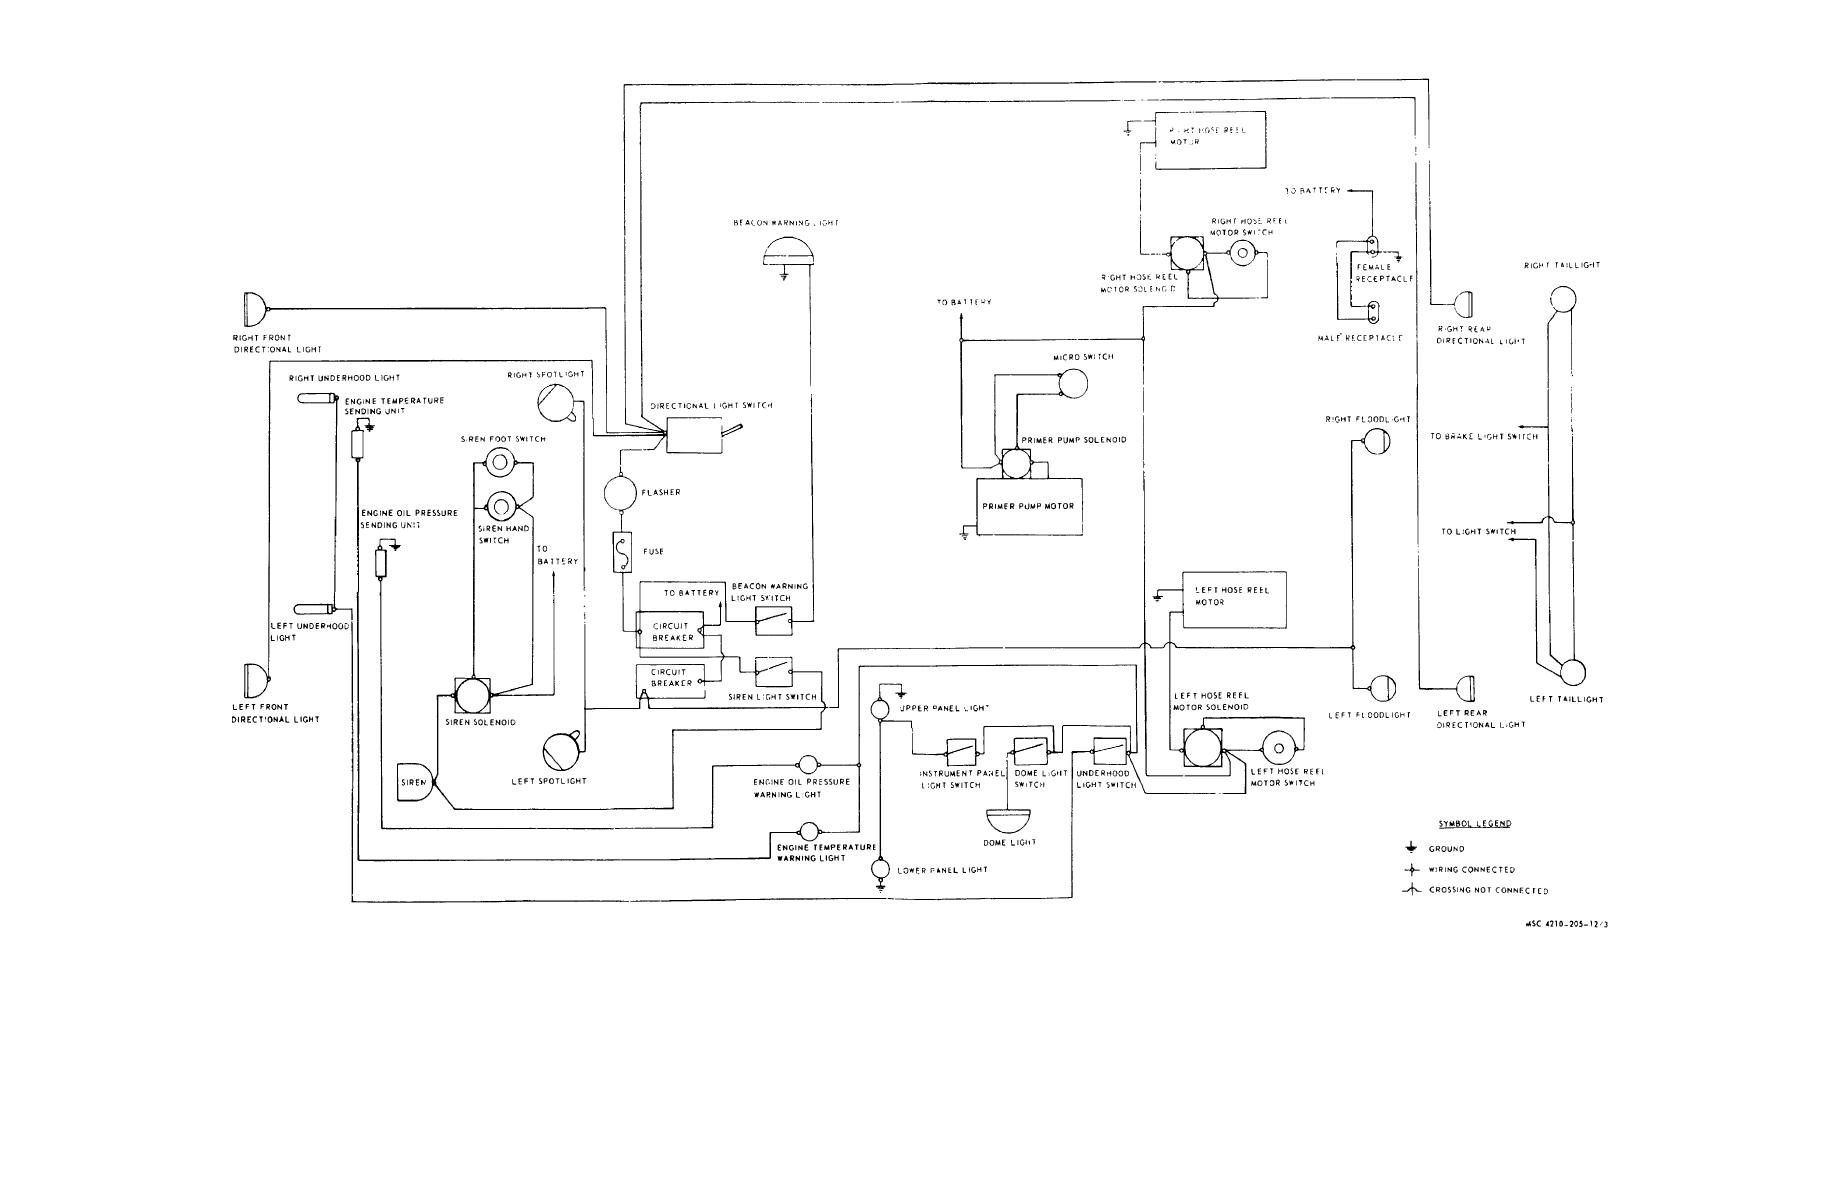 Fire Pump Circuit Diagram Data Schema Engine Centrifugal Cutaway Schematic Free Image For User Positive Displacement Pumps